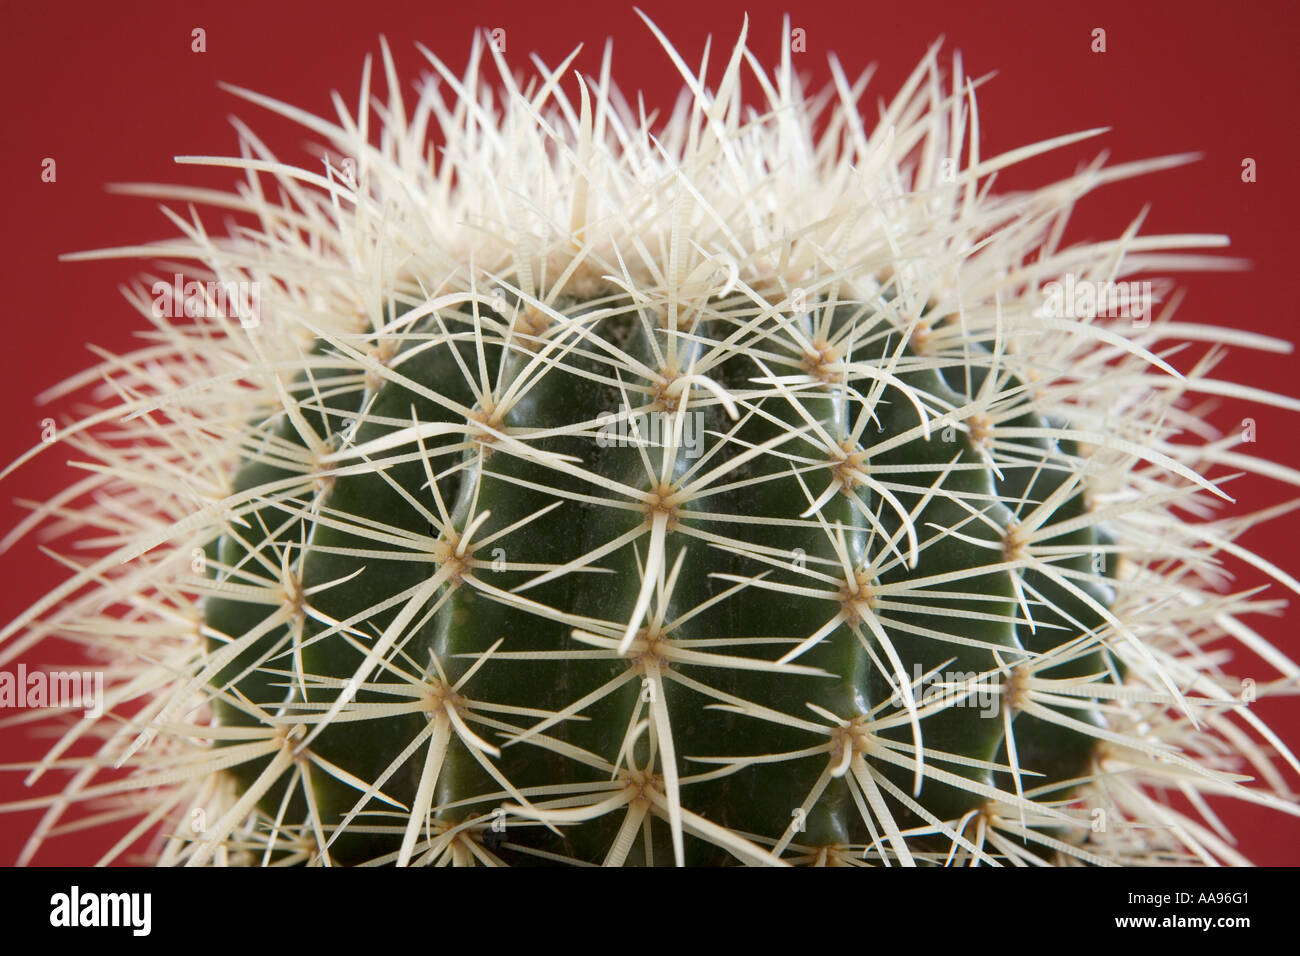 Cactus, close-up, against red background - Stock Image